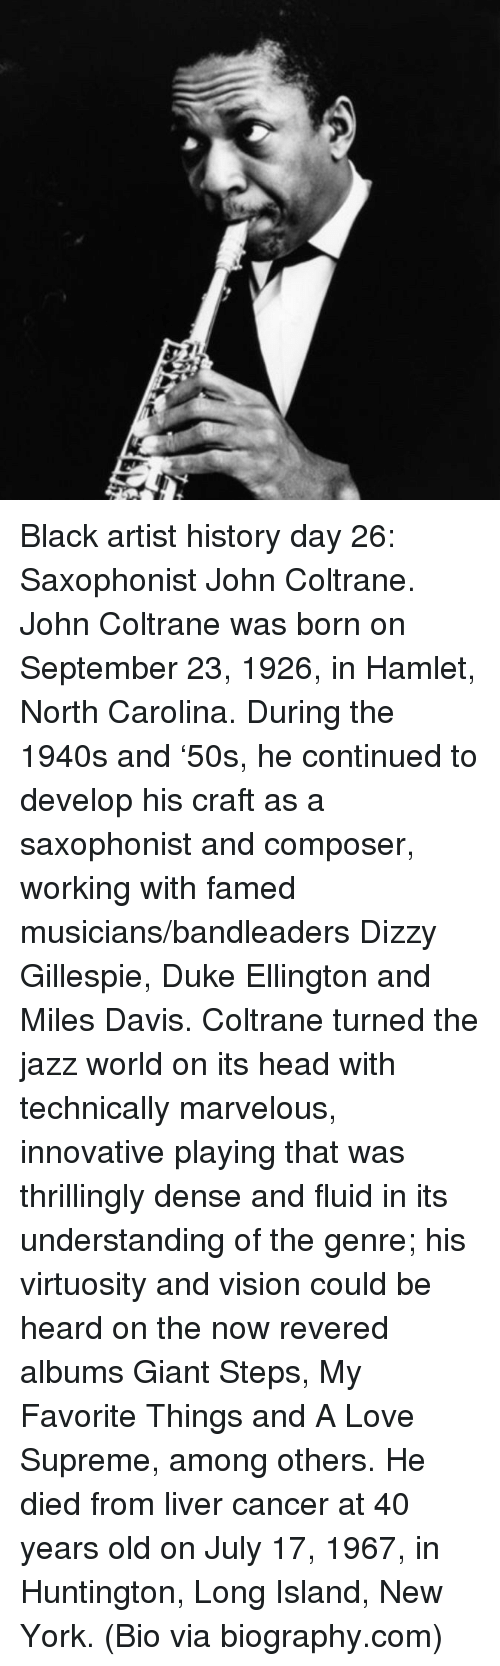 biography: <p>Black artist history day 26: Saxophonist John Coltrane.</p>  <p>John Coltrane was born on September 23, 1926, in Hamlet, North Carolina. During the 1940s and &lsquo;50s, he continued to develop his craft as a saxophonist and composer, working with famed musicians/bandleaders Dizzy Gillespie, Duke Ellington and Miles Davis. Coltrane turned the jazz world on its head with technically marvelous, innovative playing that was thrillingly dense and fluid in its understanding of the genre; his virtuosity and vision could be heard on the now revered albums Giant Steps, My Favorite Things and A Love Supreme, among others. He died from liver cancer at 40 years old on July 17, 1967, in Huntington, Long Island, New York. (Bio via biography.com)</p>